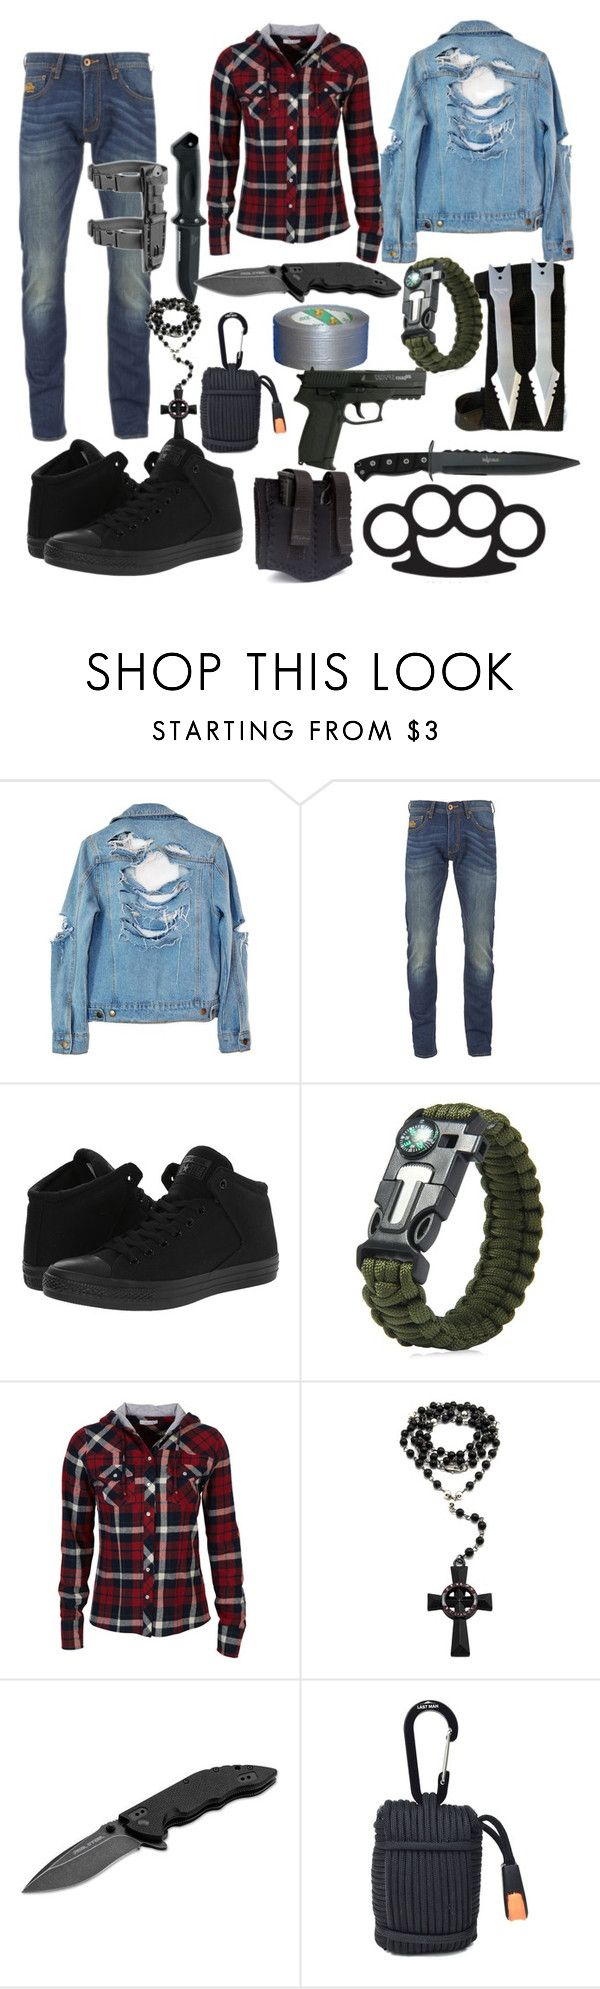 """TWD Inspired Outfit"" by sammywinchester05 ❤ liked on Polyvore featuring High Heels Suicide, Superdry, Converse, X Games, dELiA*s and Böker"